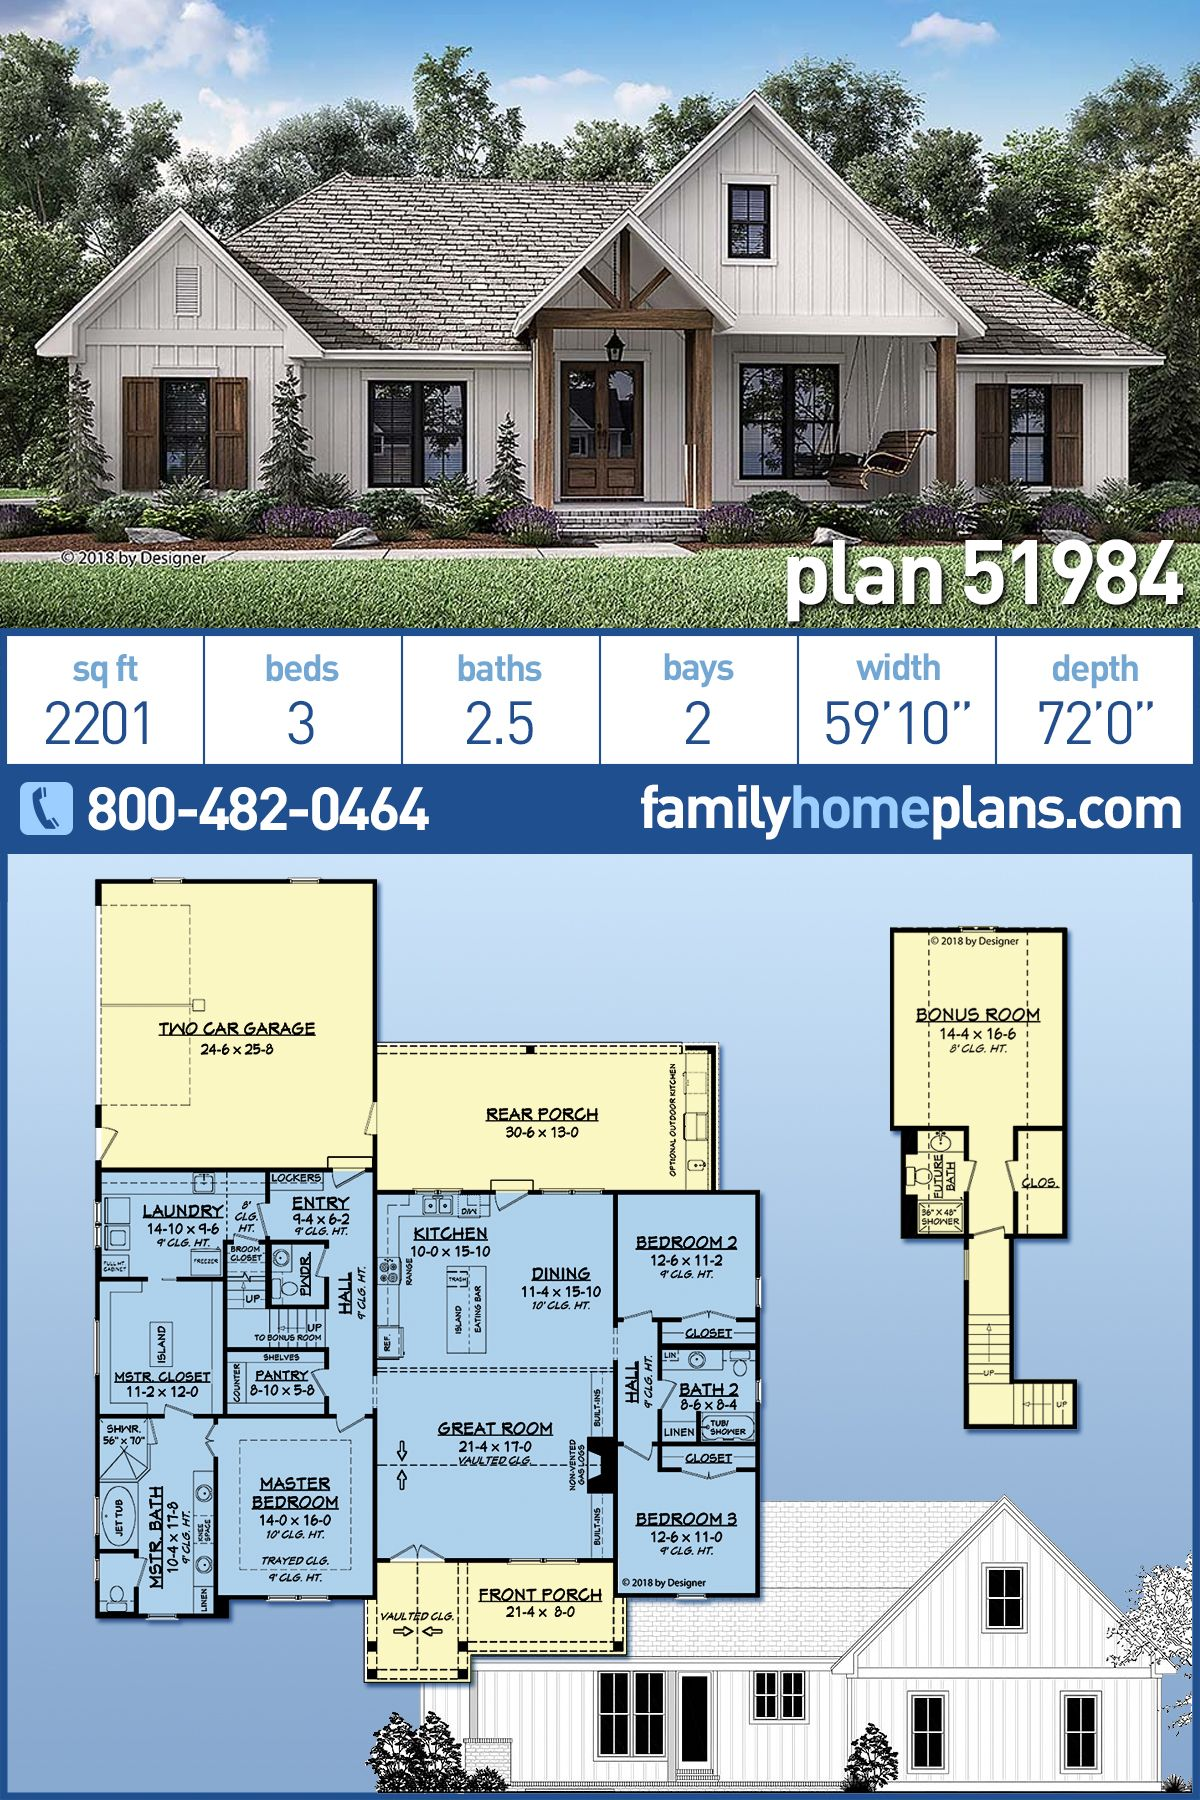 Southern Style House Plan 51984 With 3 Bed 3 Bath 2 Car Garage Family House Plans Craftsman House House Plans Farmhouse